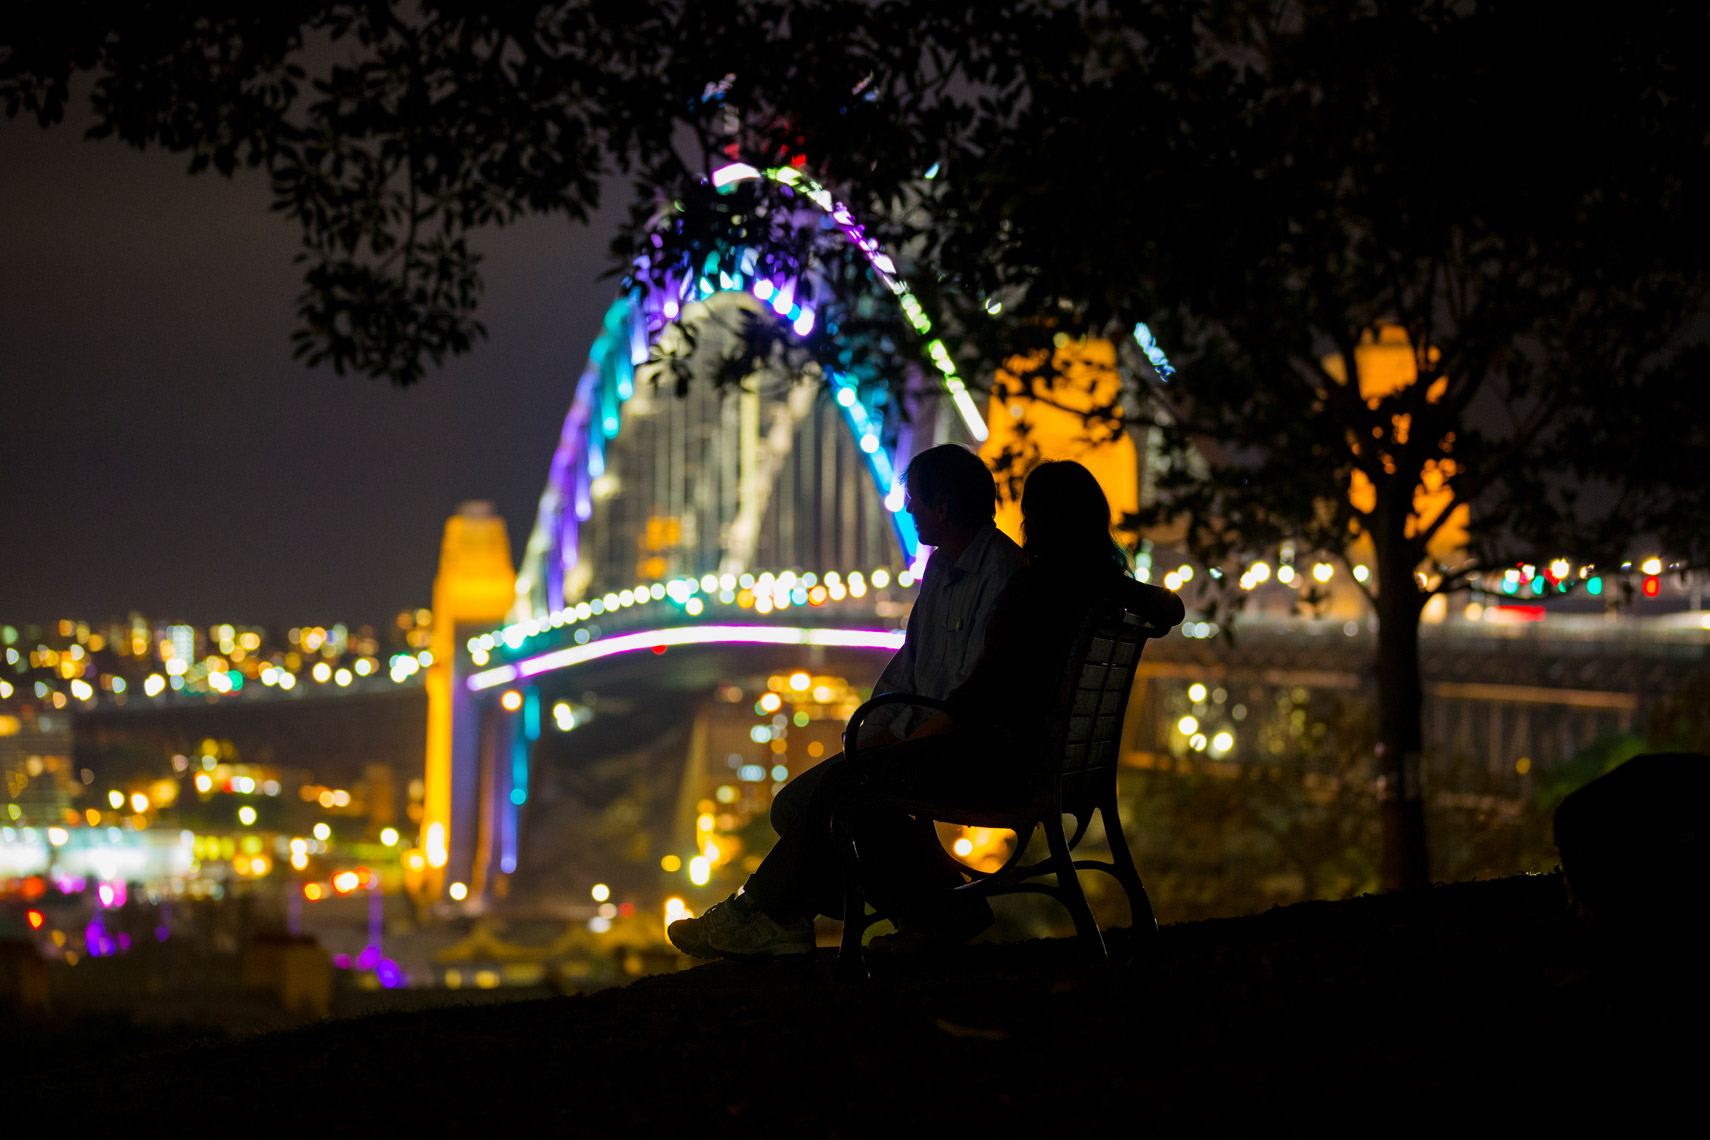 Vivid-Sydney-2014_Color-the-bridge_Observatory-Hill_James-Horan_DNSW_008